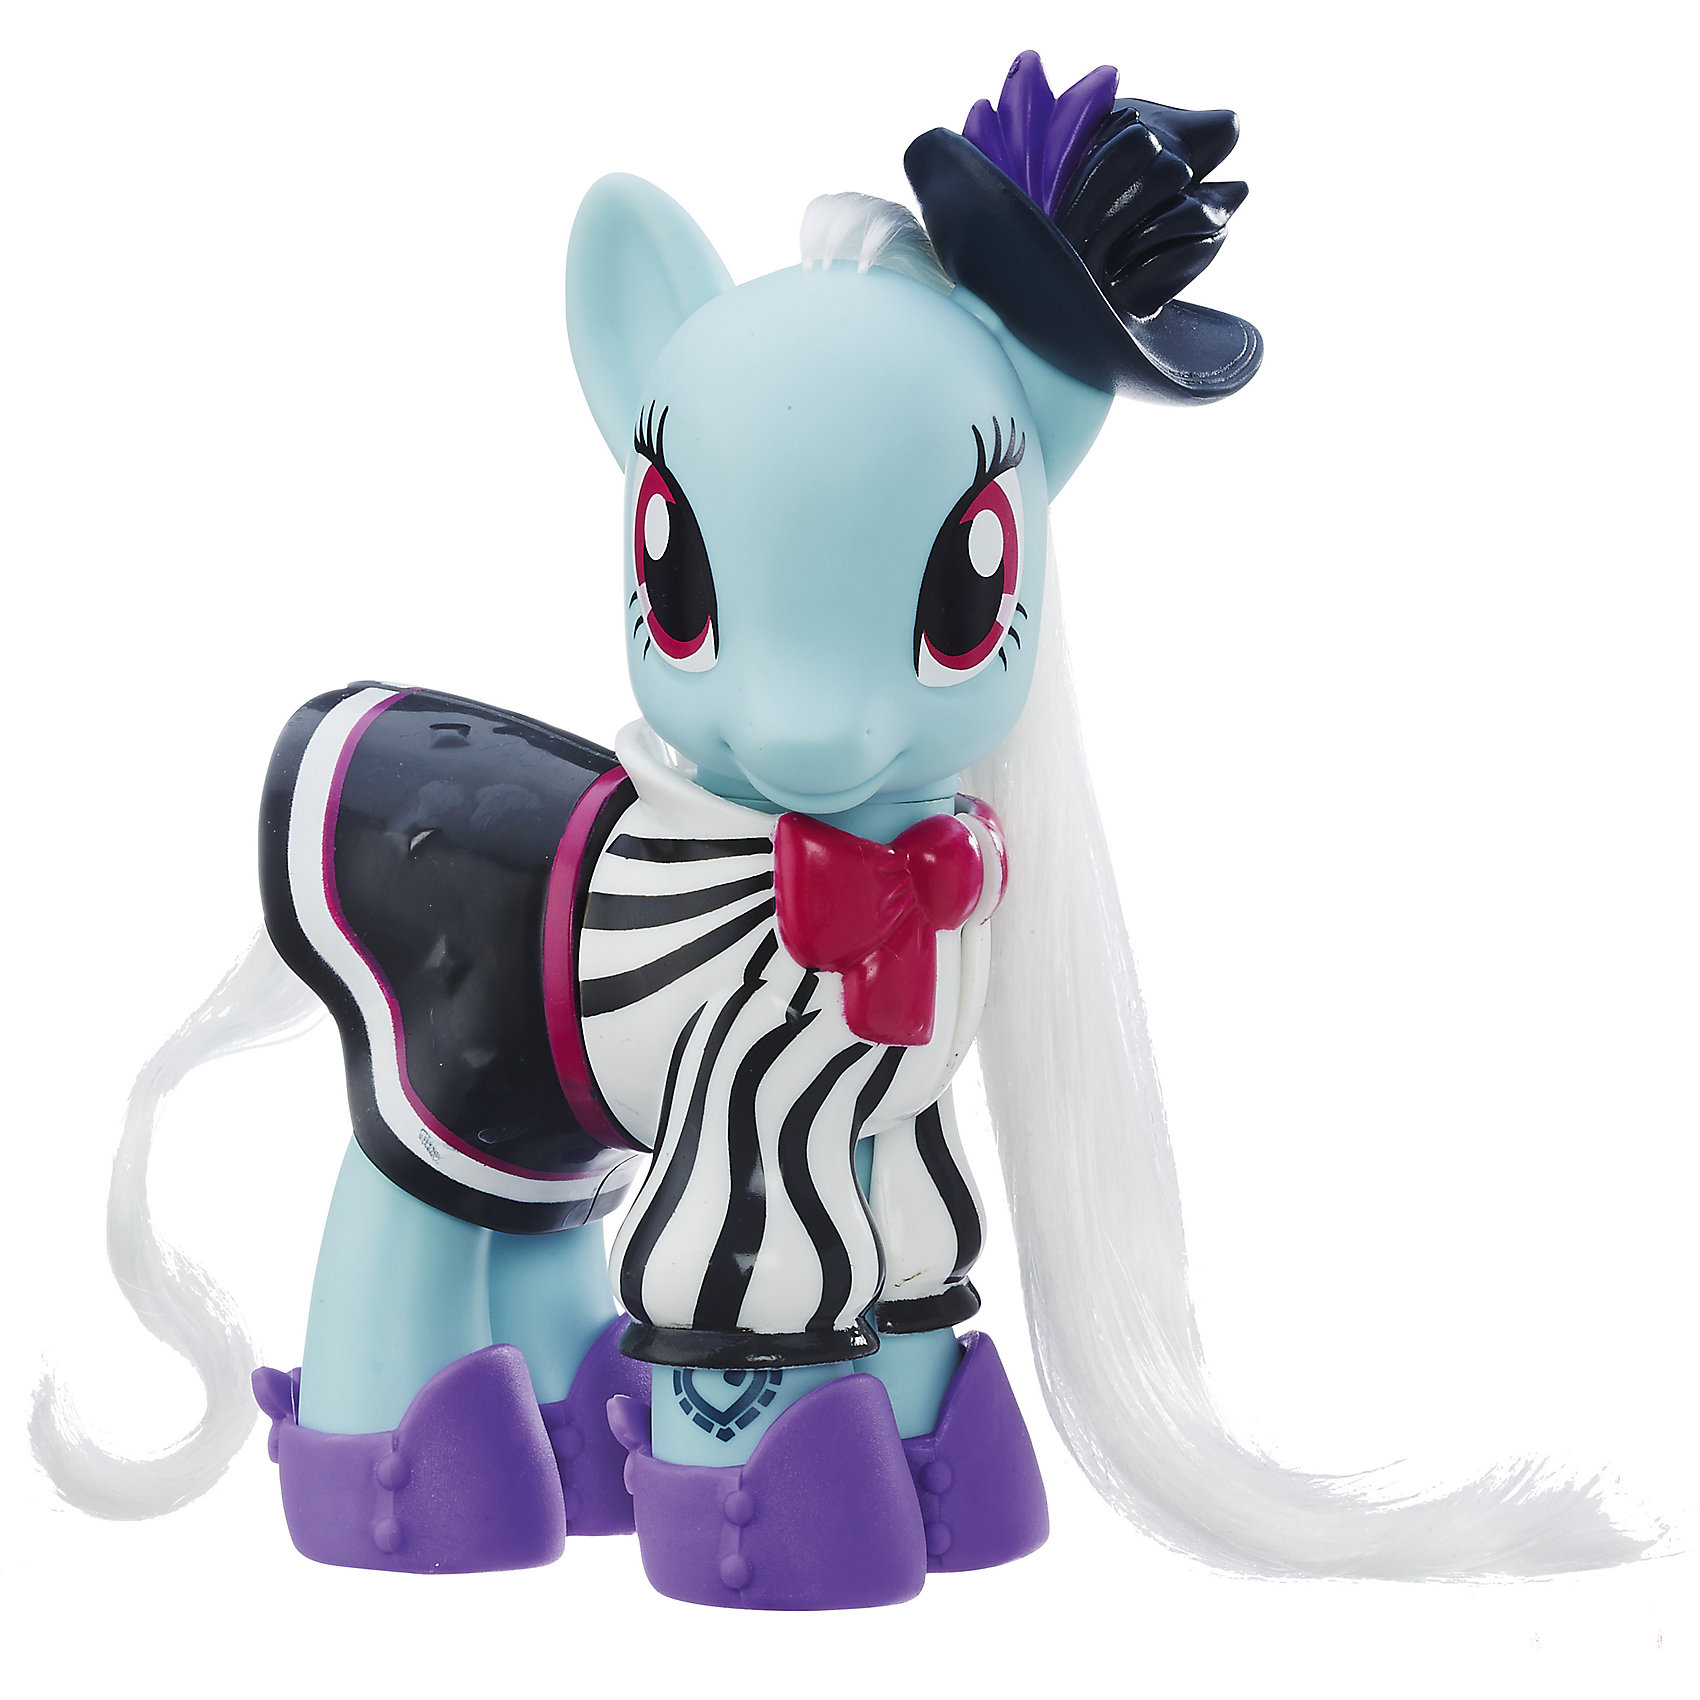 Hasbro Пони-Модница, My little Pony, B8849/B5364 пони модница рарити